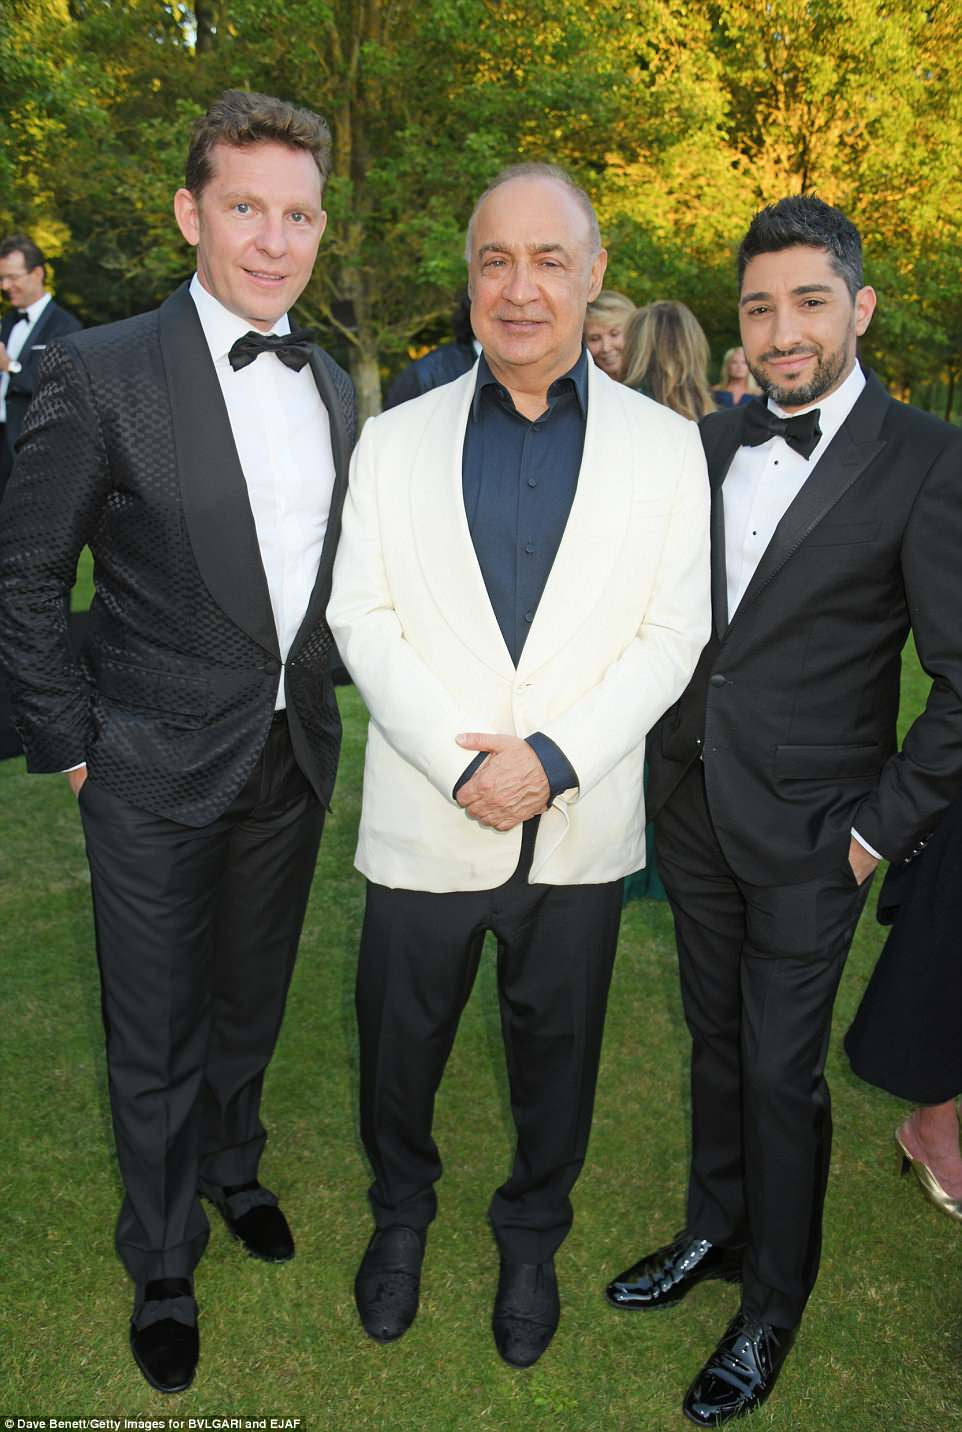 Catching up: (L to R) Nick Candy, Sir Len Blavatnik and Michael Russo caught up at the event